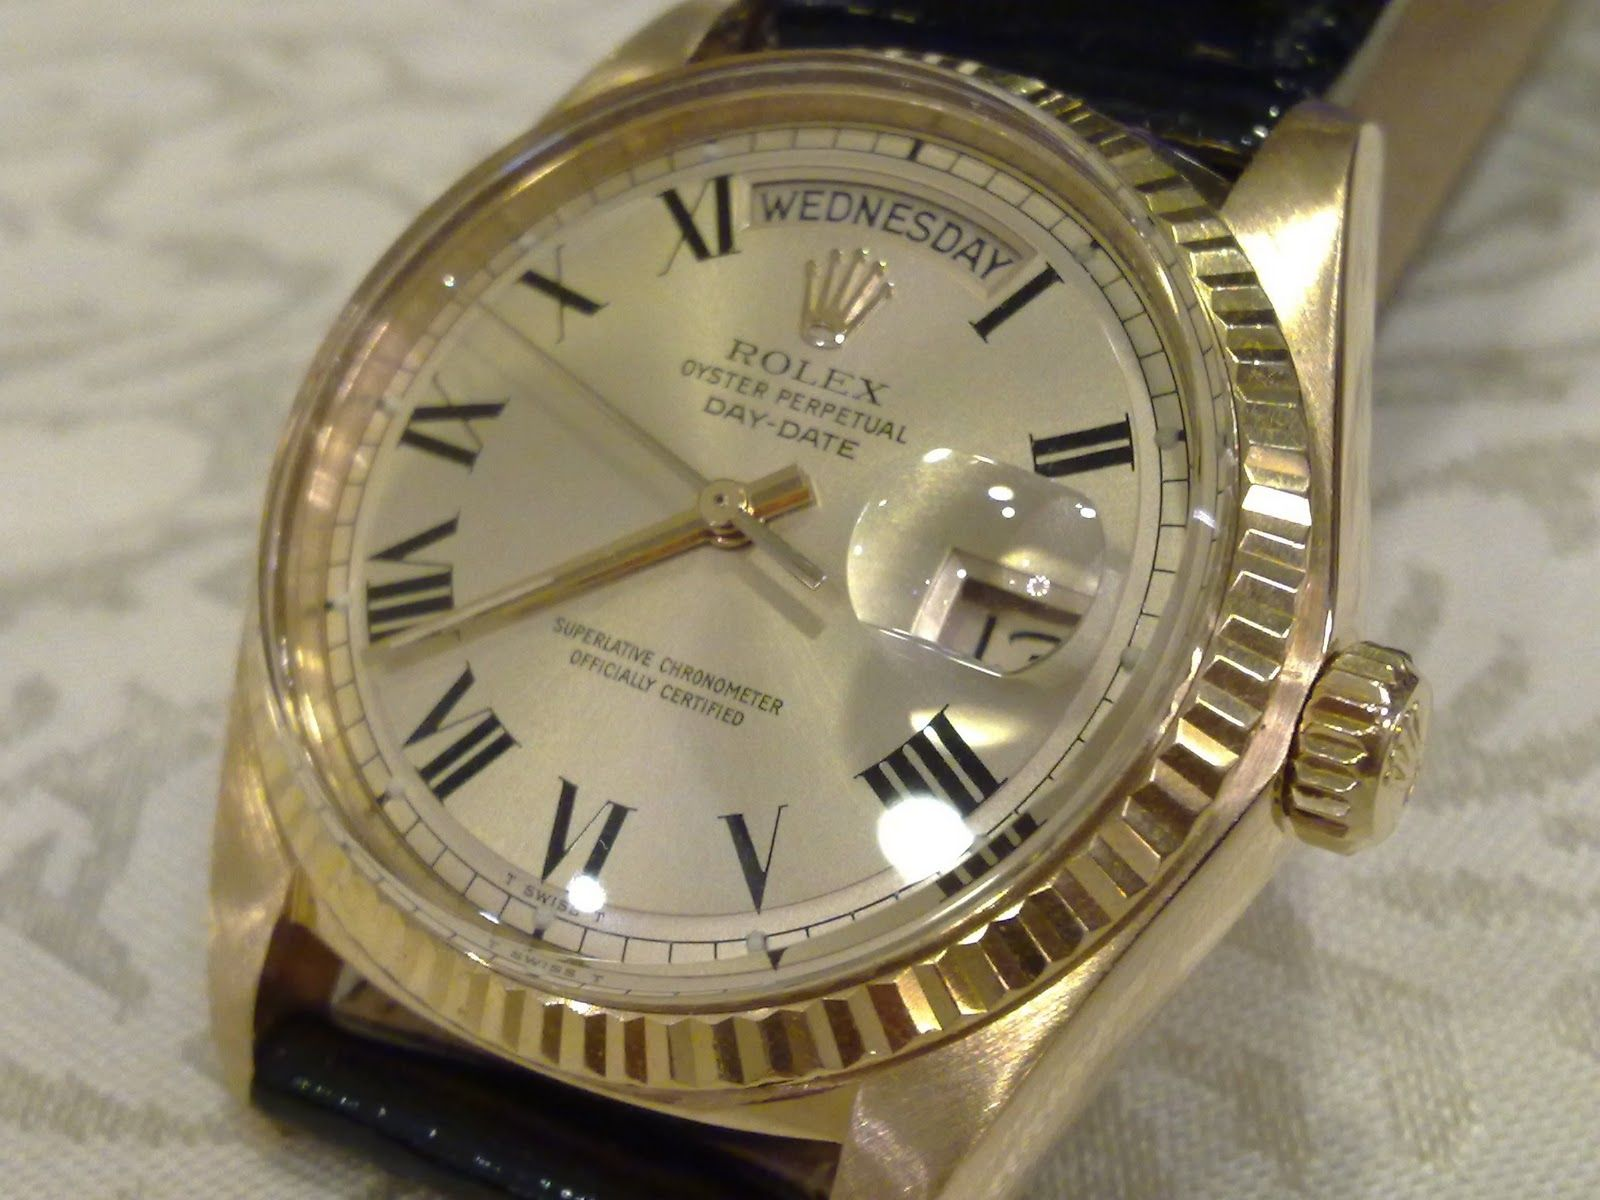 Rolex for sale cheap - Rolex Watches For Sale Cheap